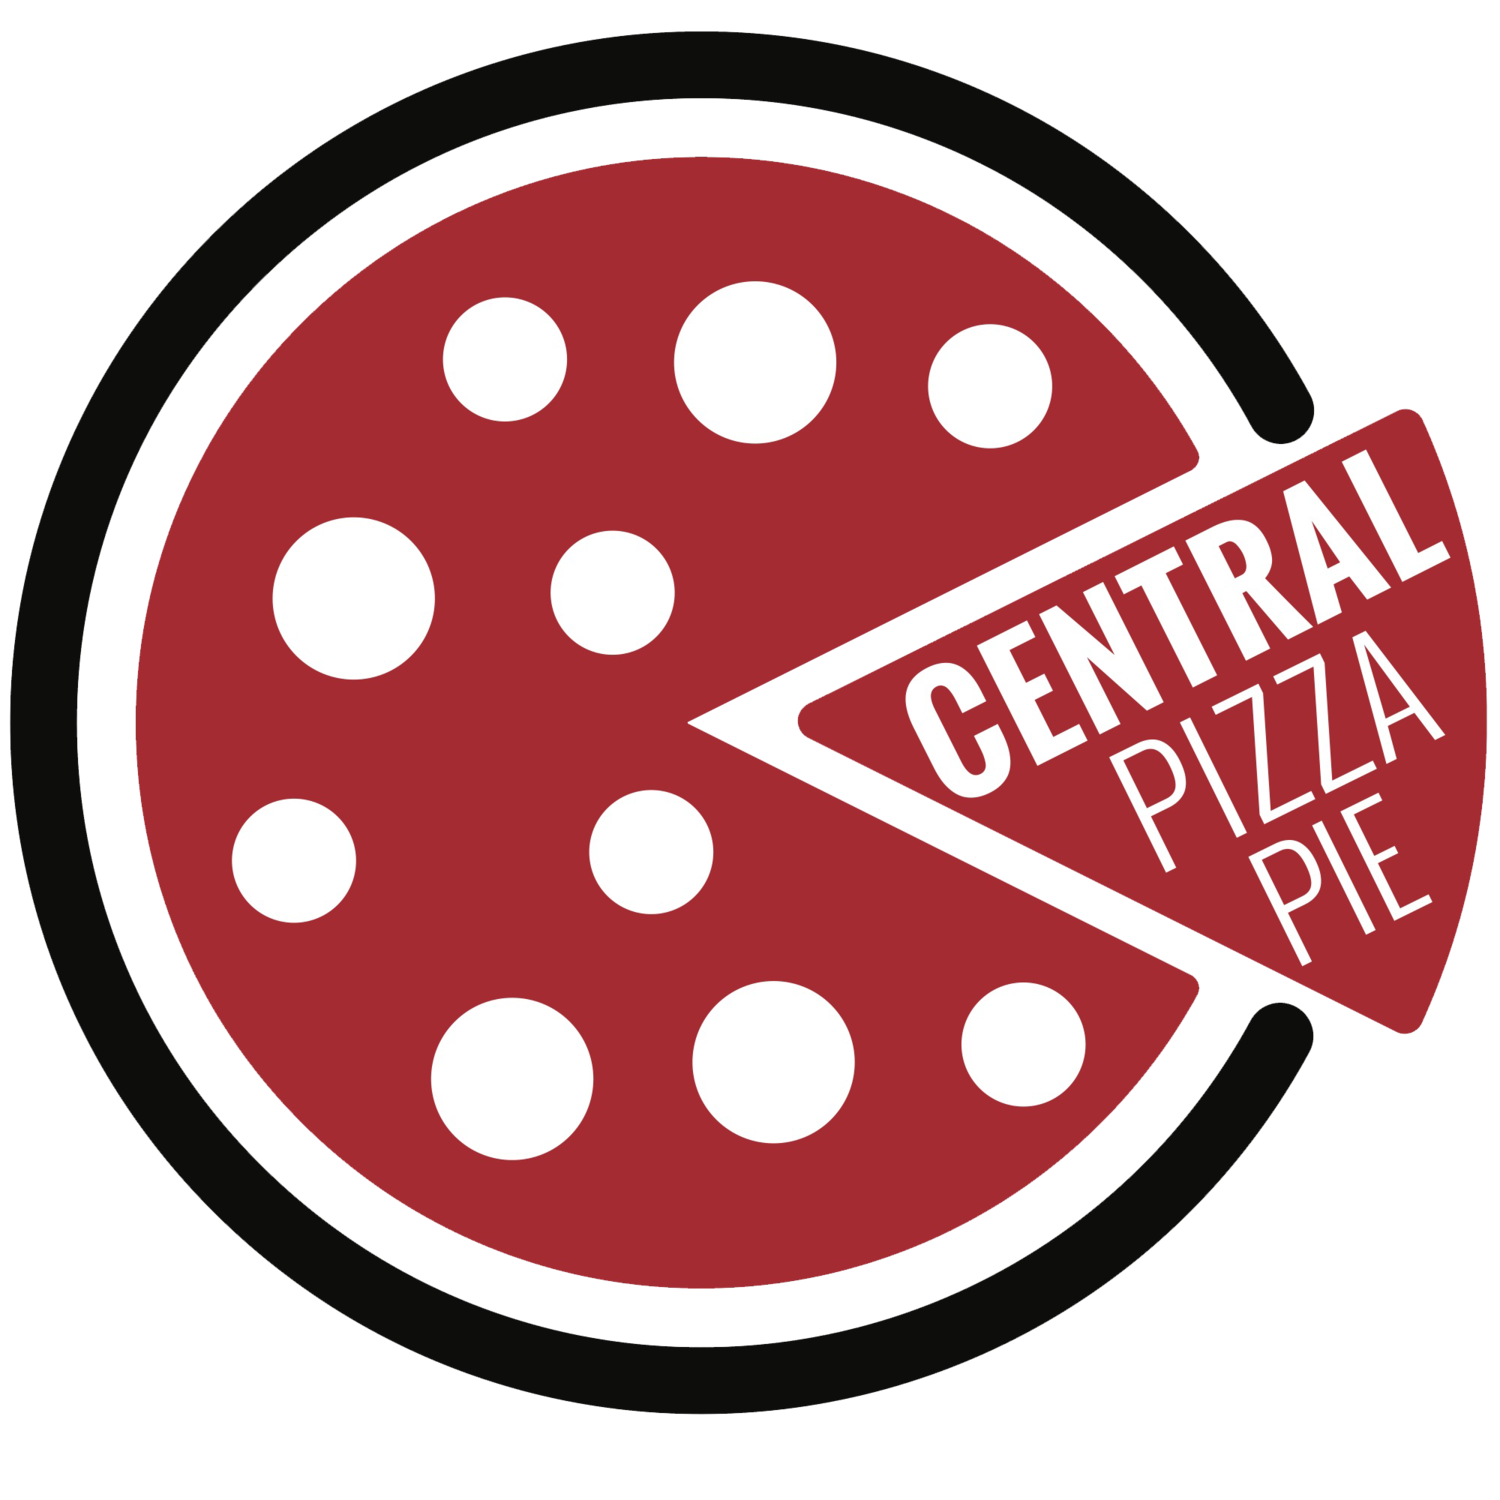 Central Pizza Pie